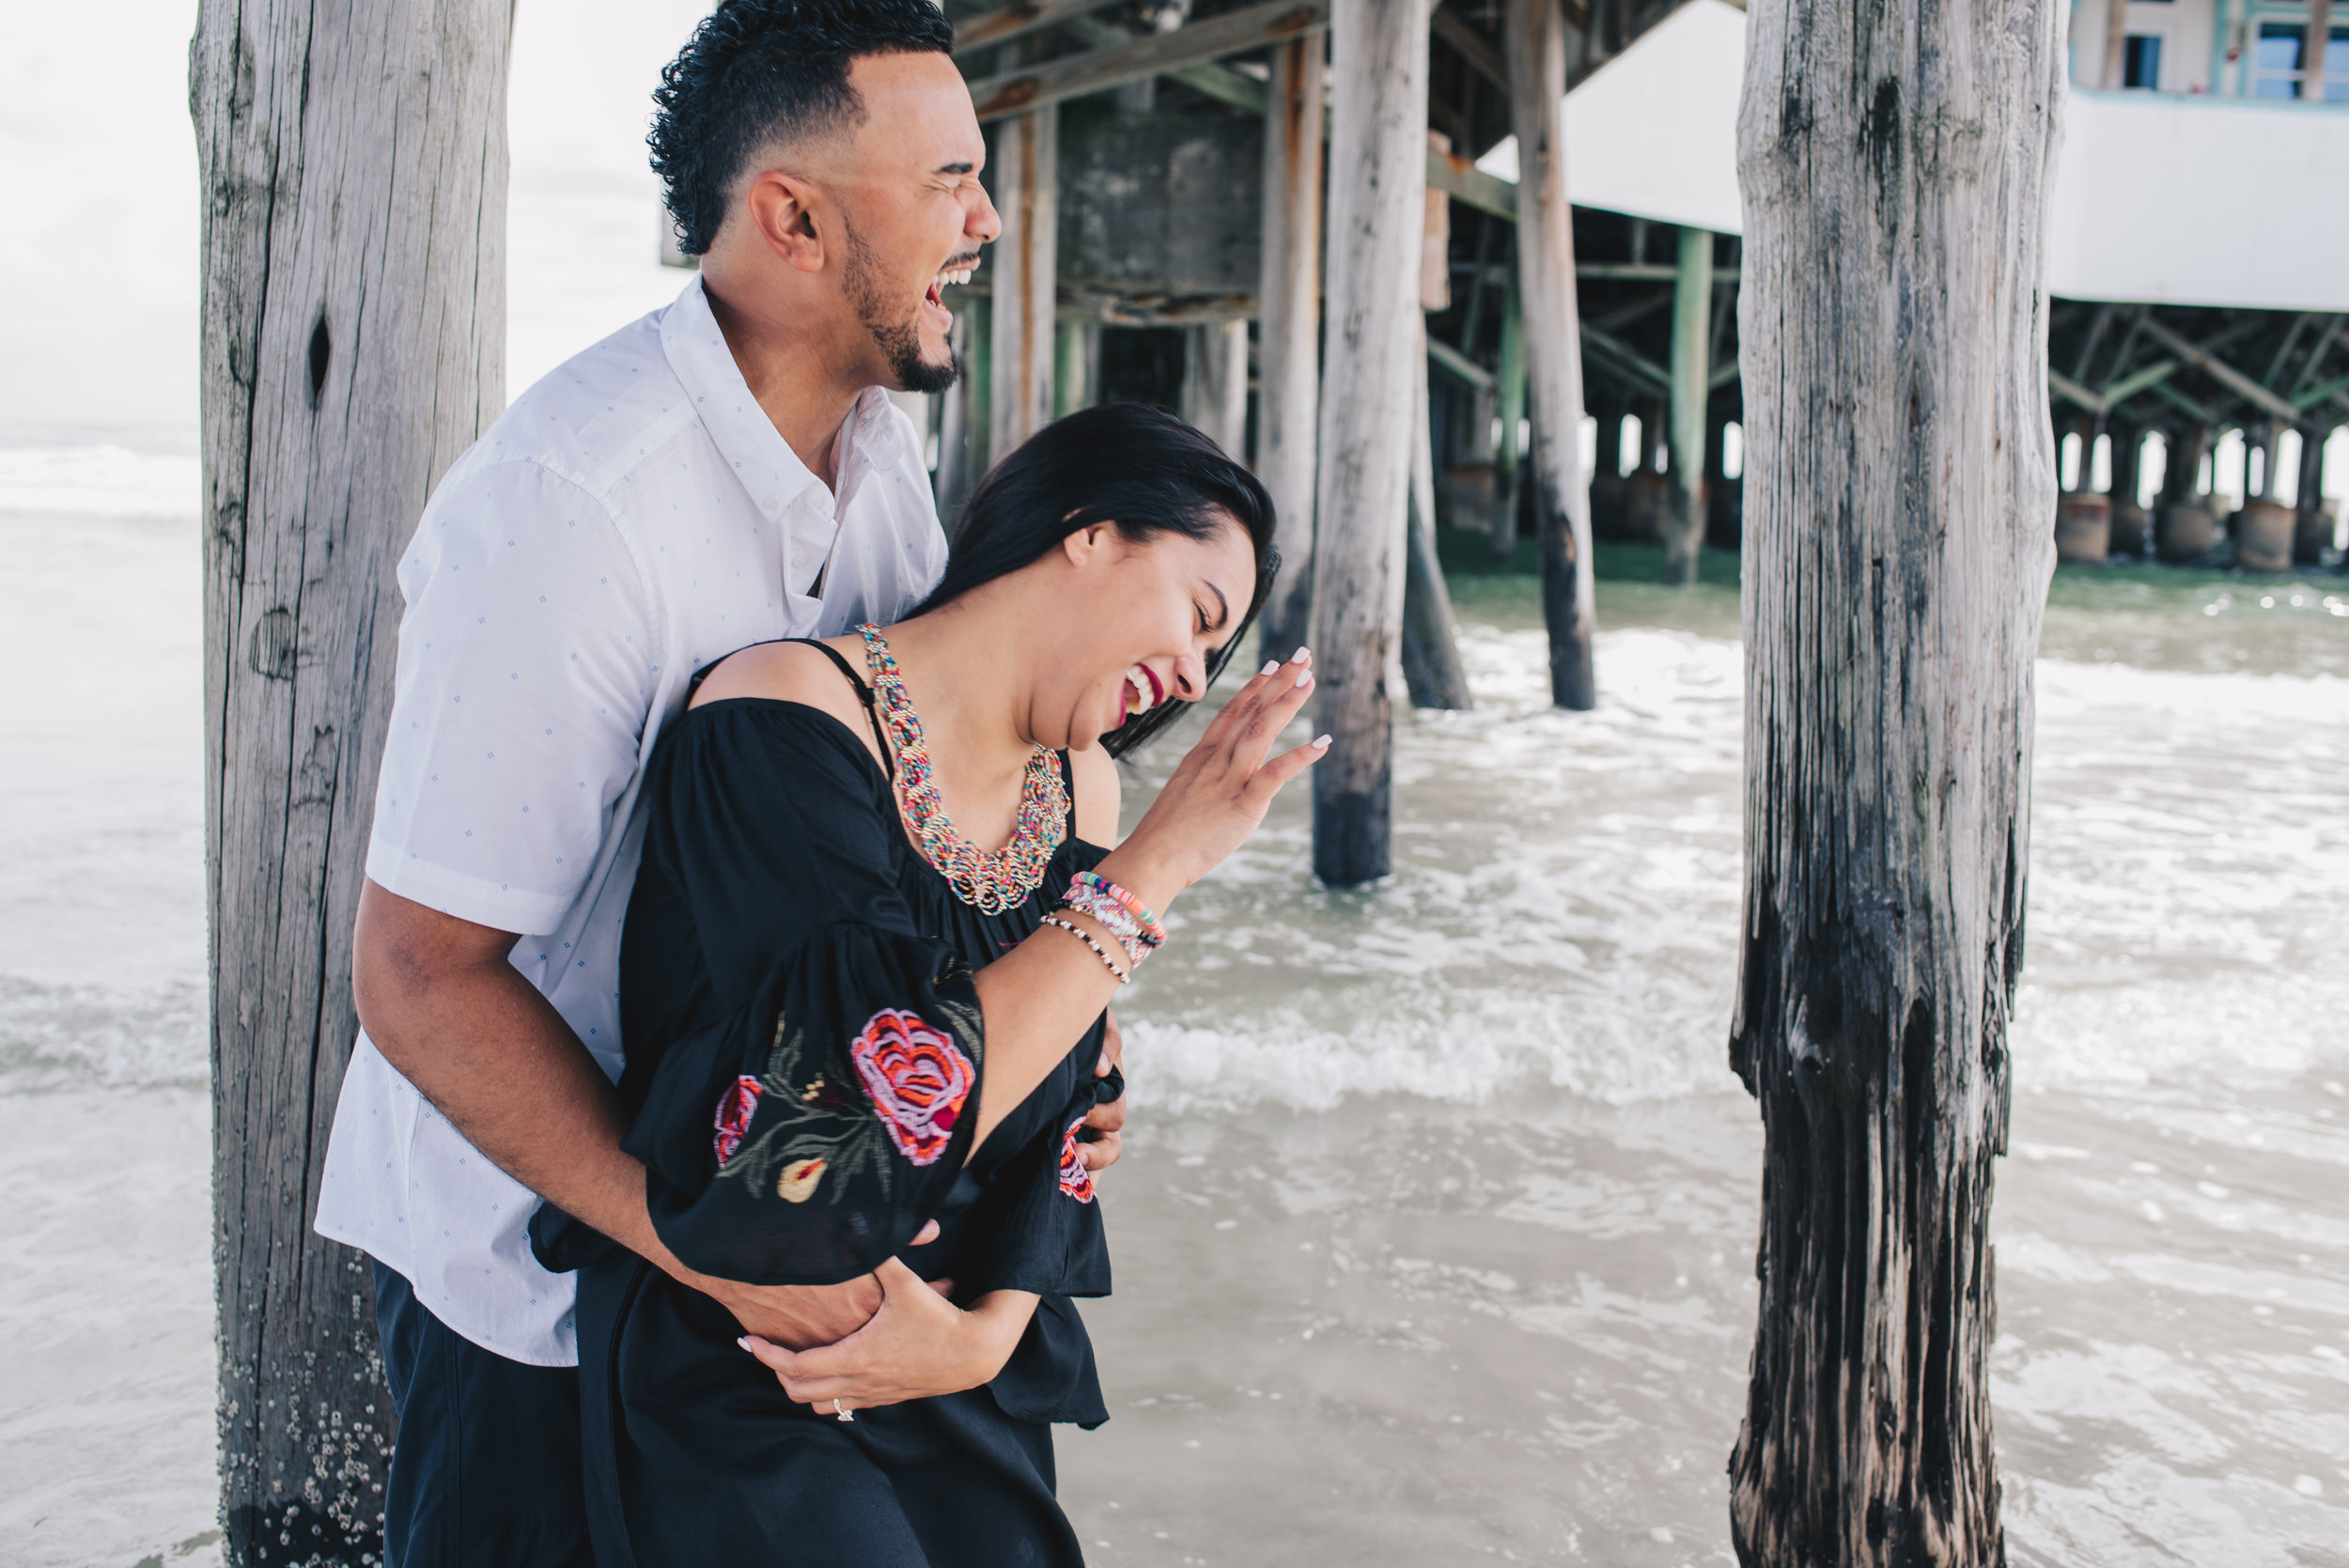 Los-Vargas-Photo-Boardwalk-Summer-Engagement-Session-1154.jpg